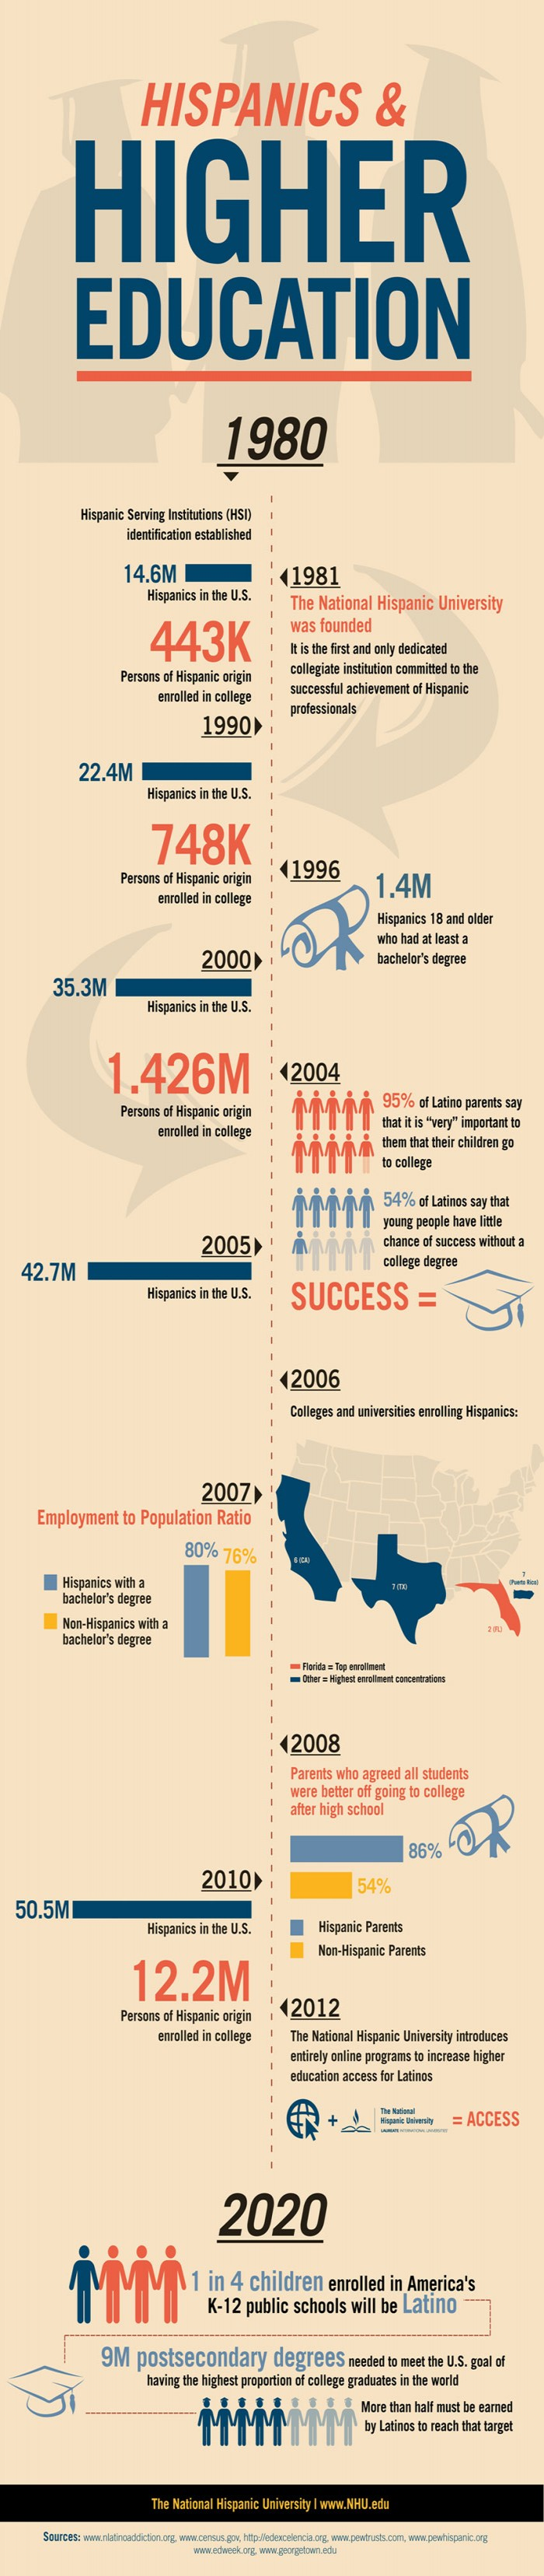 Latino Education in the US-Infographic